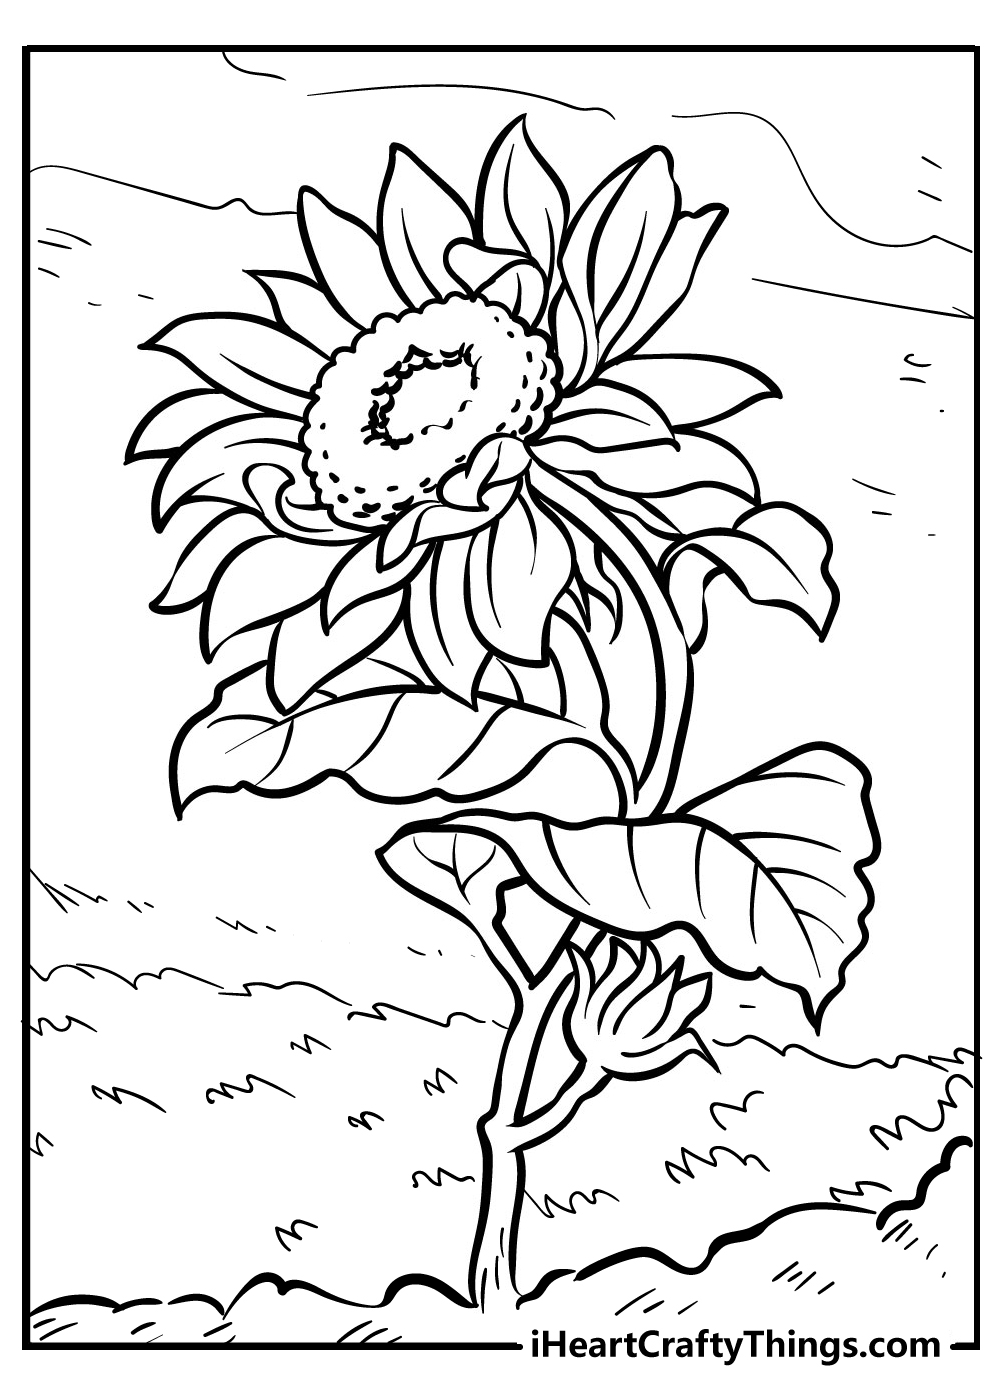 black and white sunflower drawing for kids to color